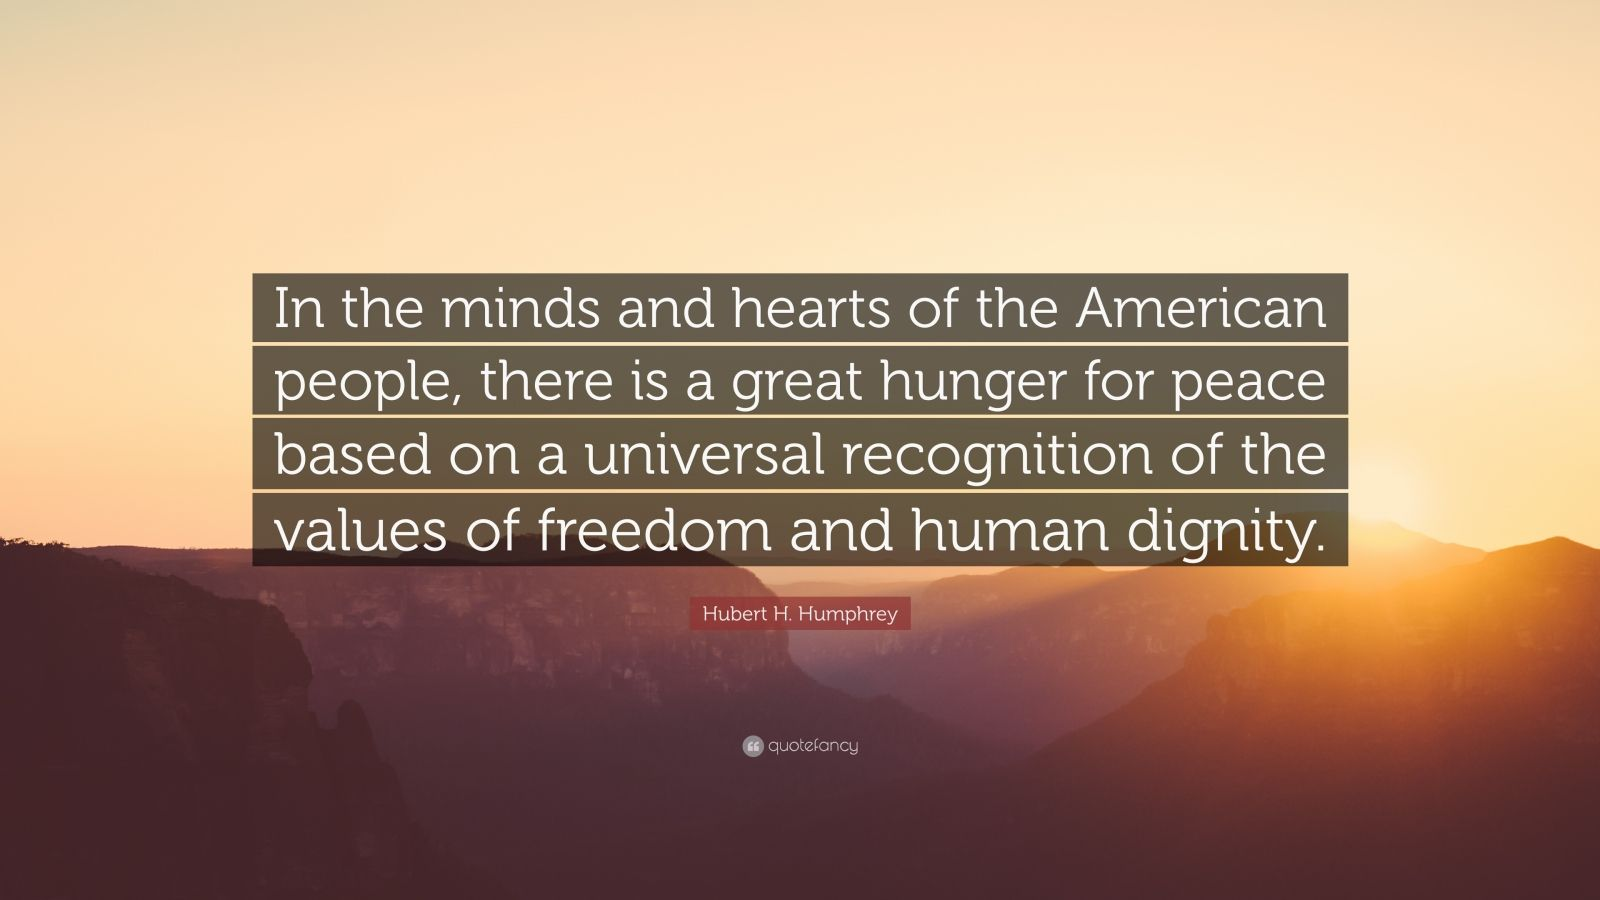 "Hubert H. Humphrey Quote: ""In the minds and hearts of the American people, there is a great hunger for peace based on a universal recognition of the values of freedom and human dignity."""